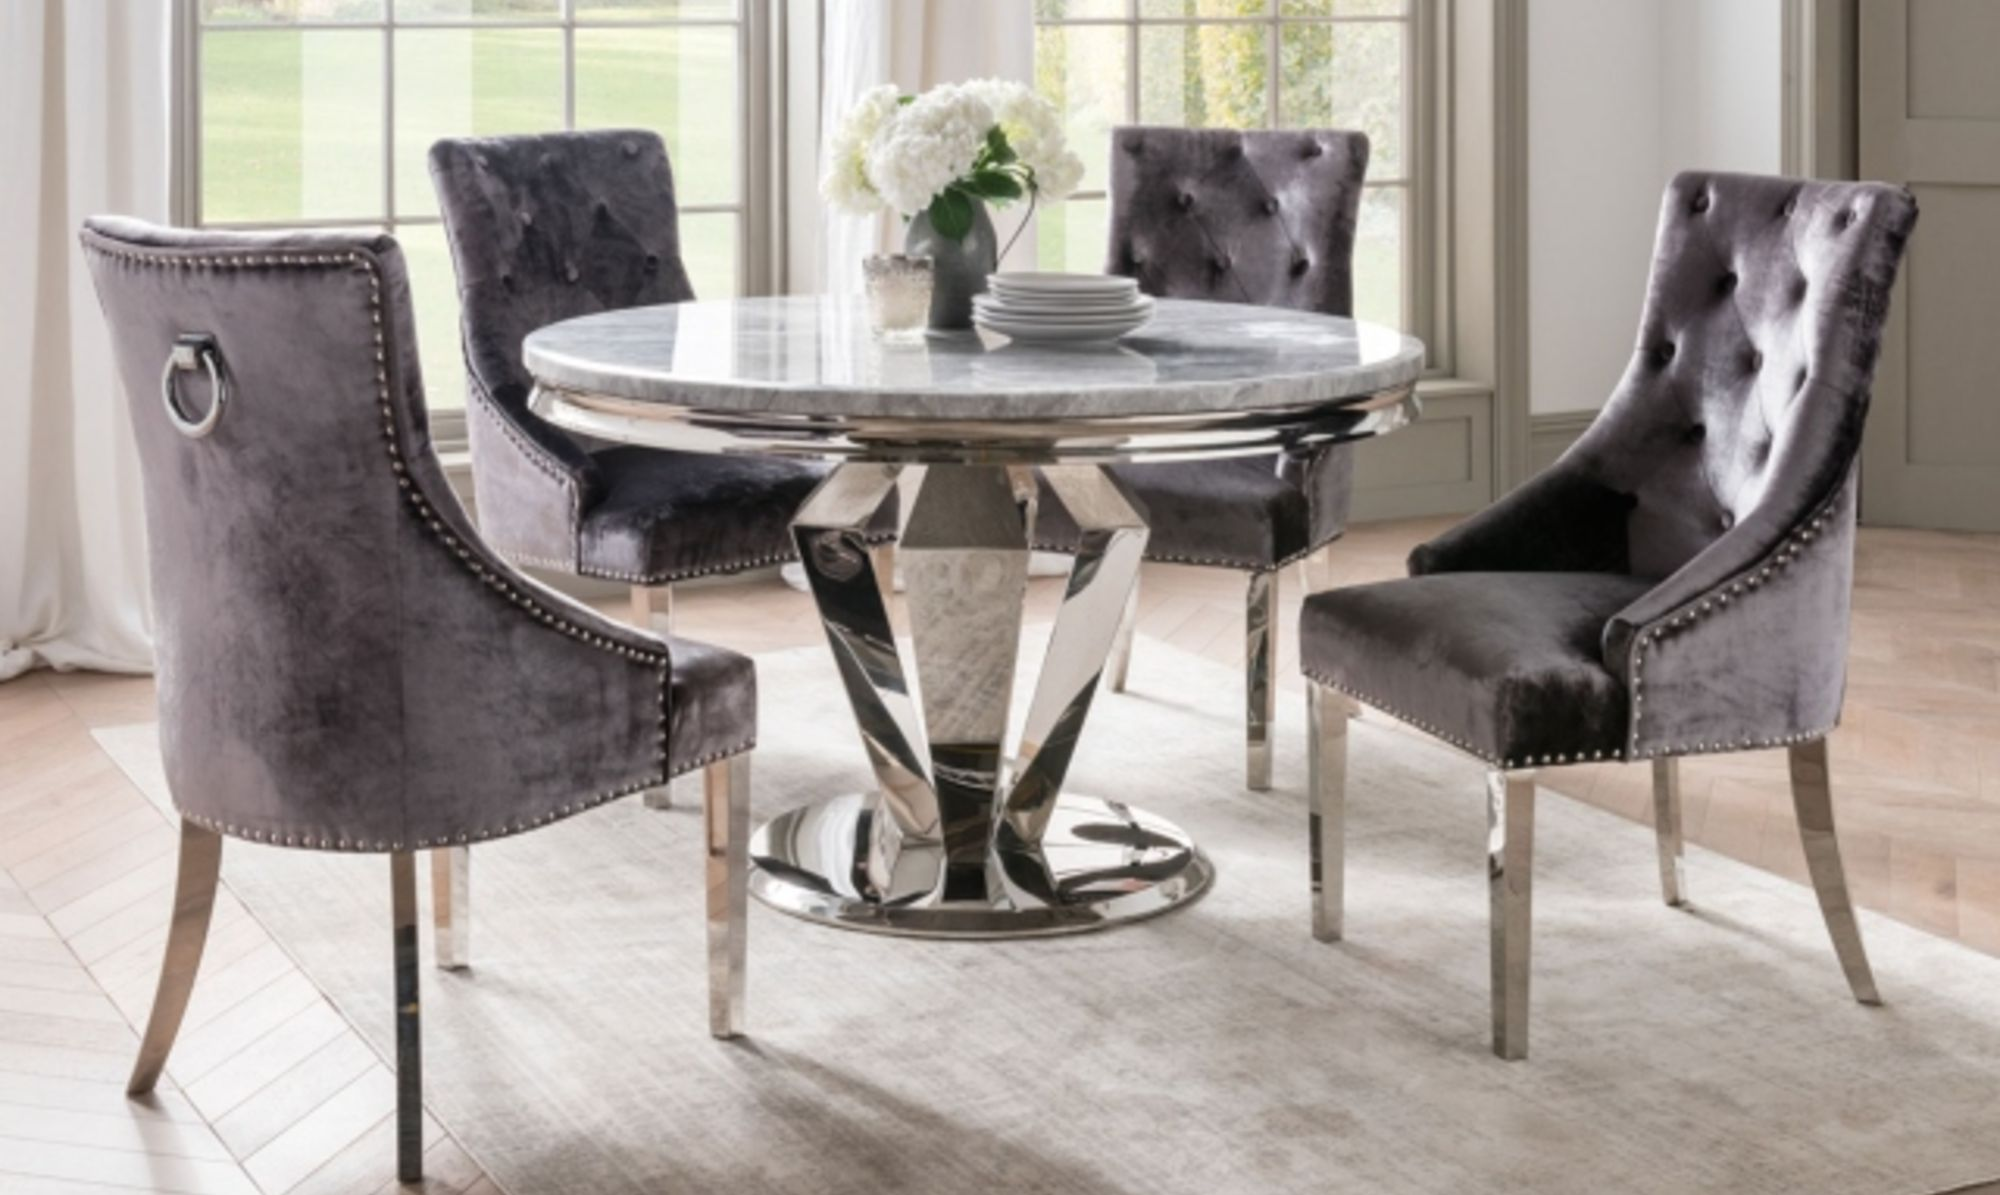 Missano Grey round dining table